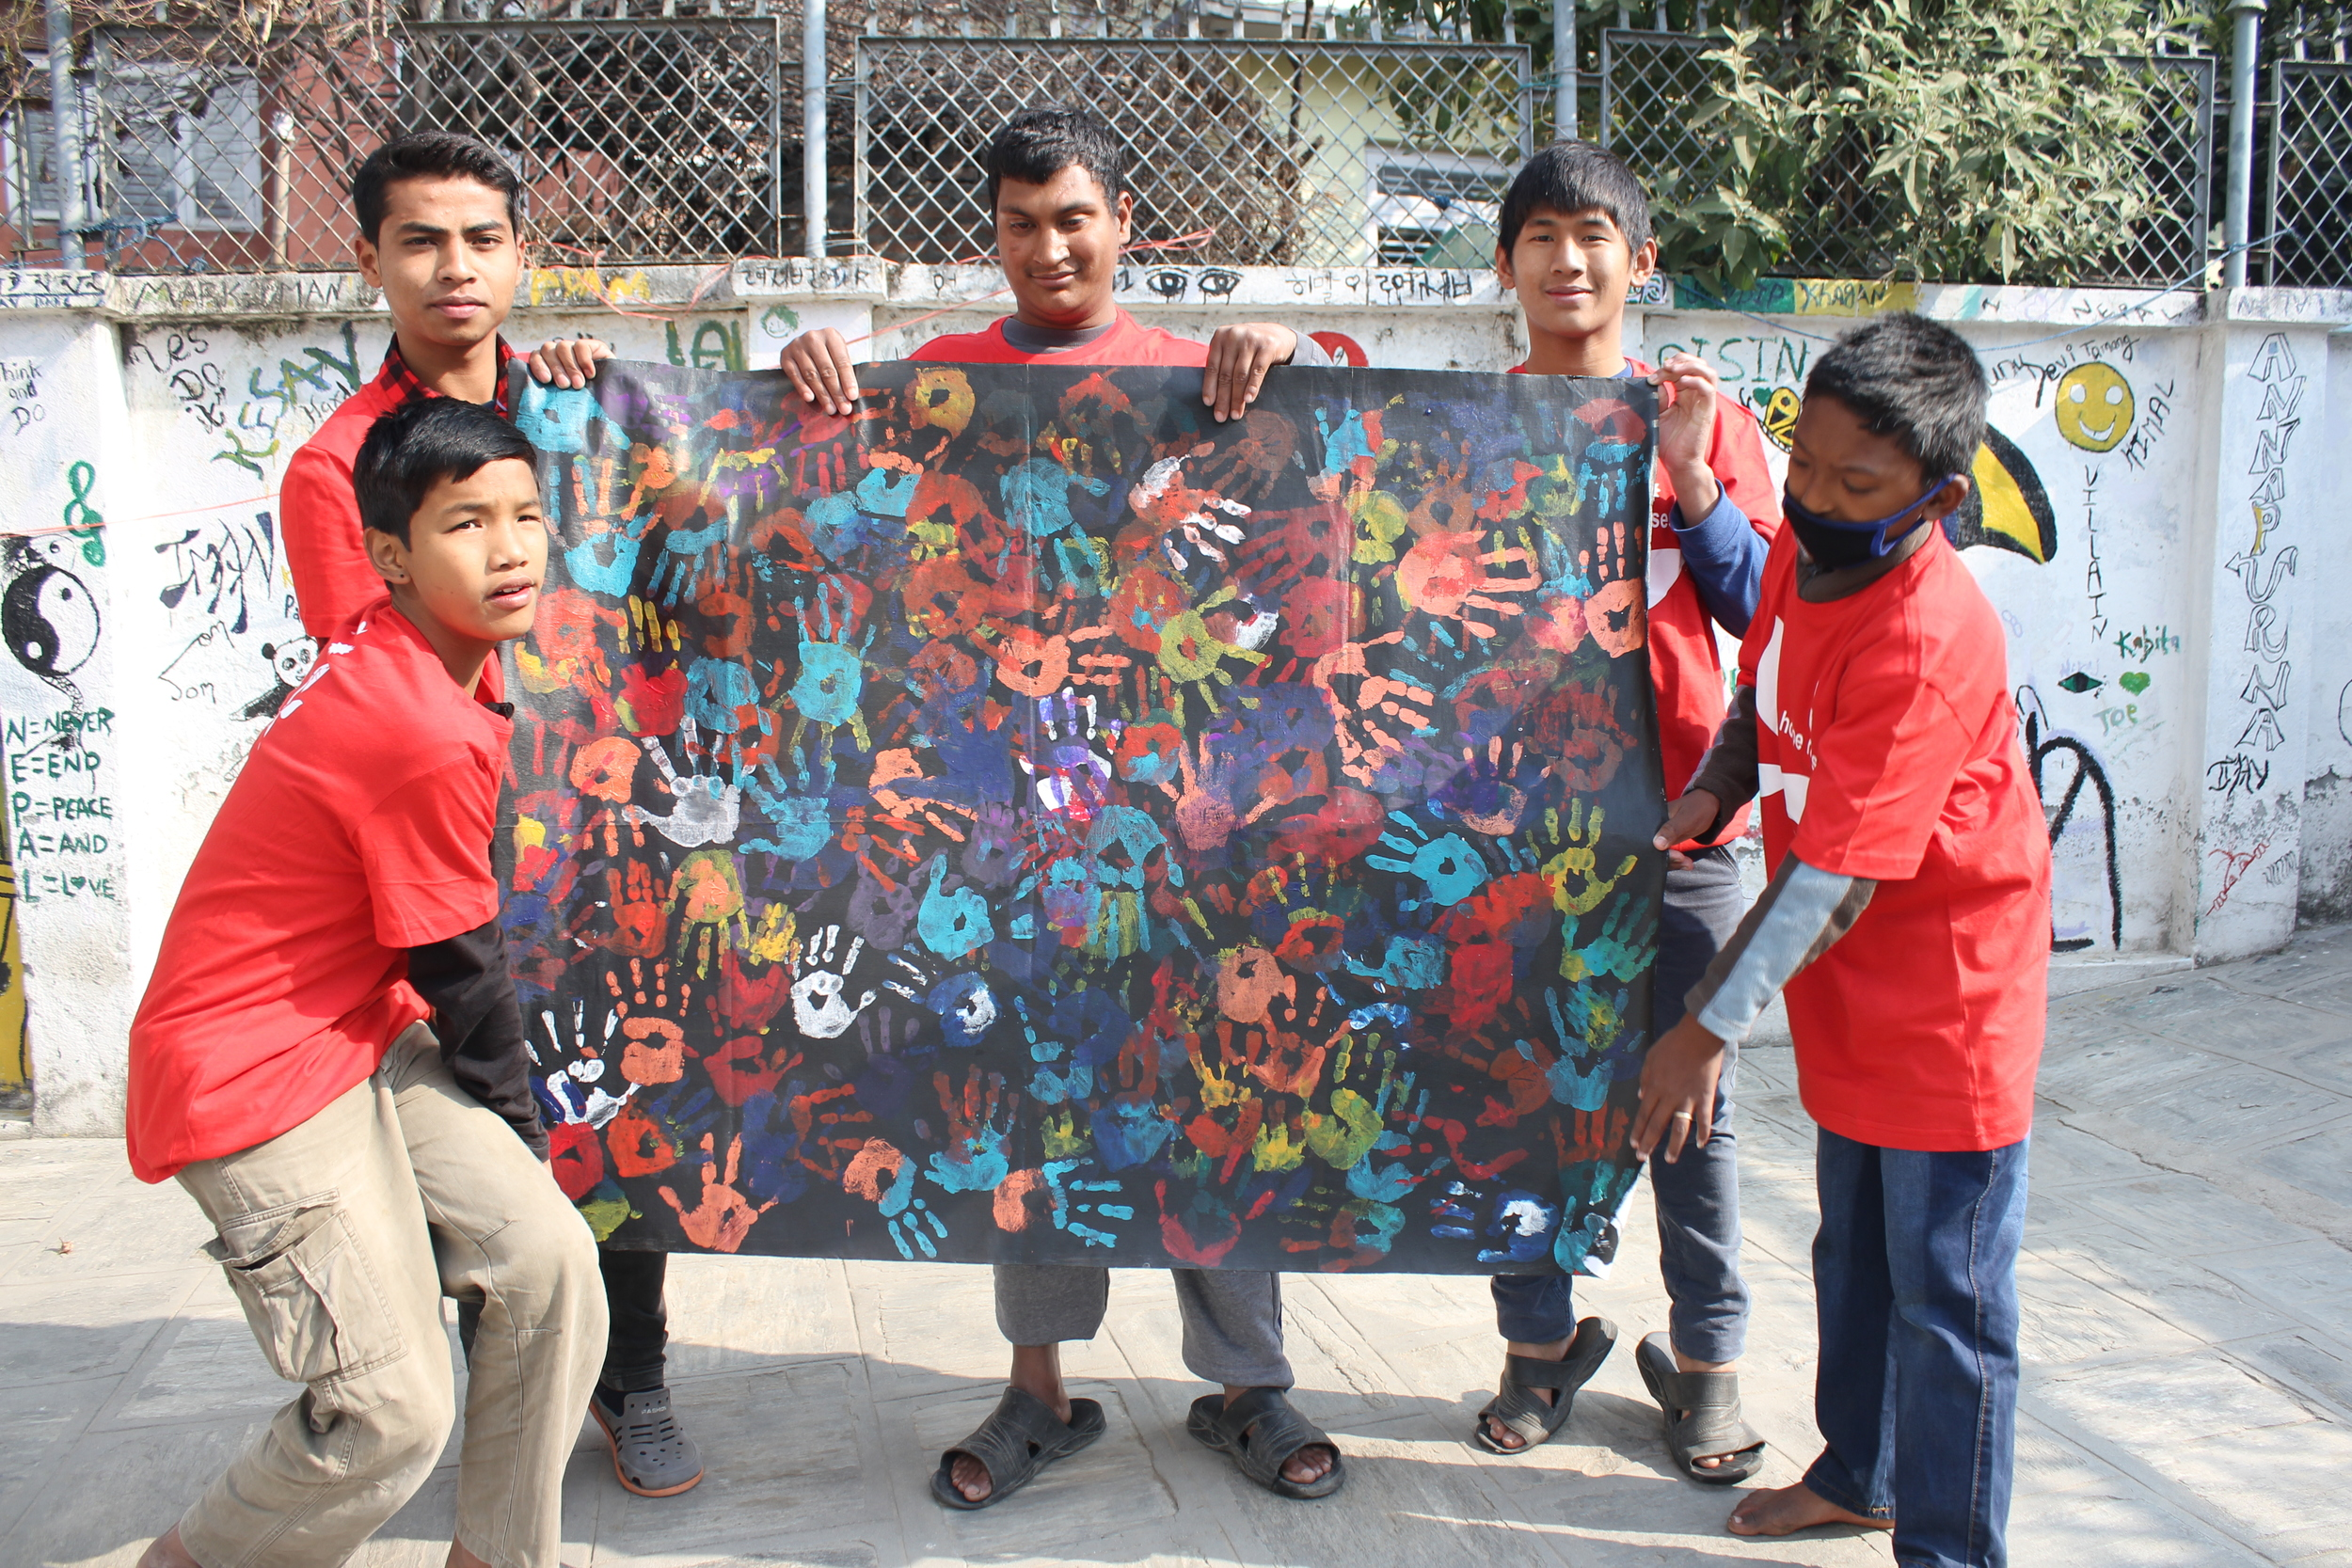 Umbrella boys with the painting from Gilgandra school